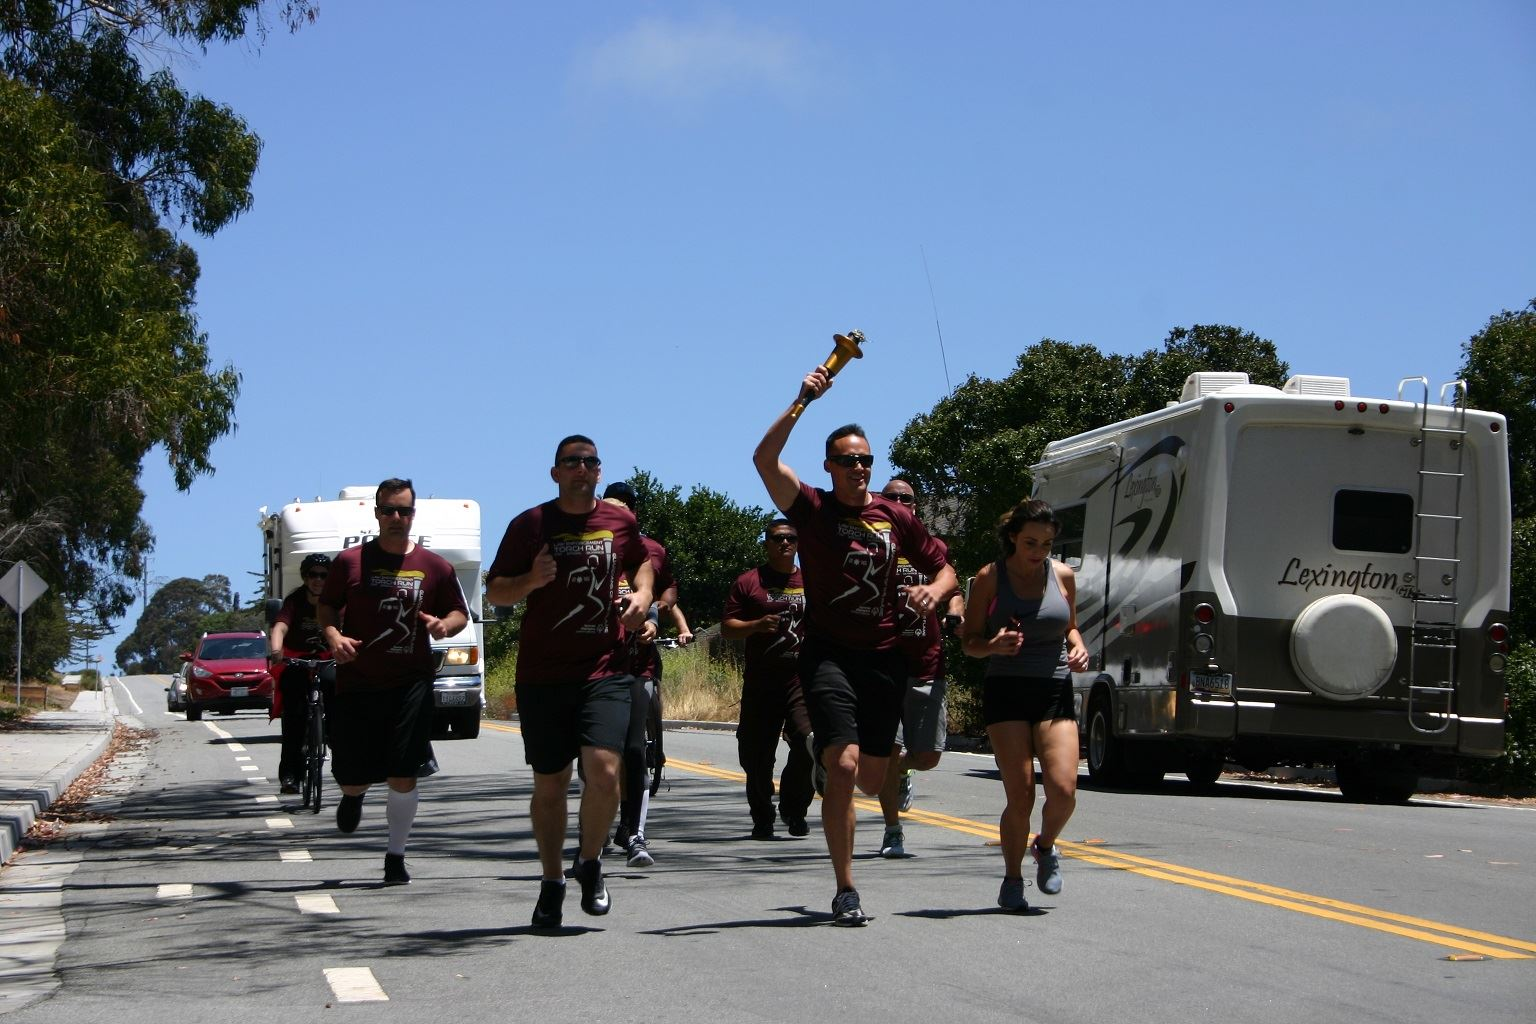 Group of Torch Run participants running on road carrying the torch